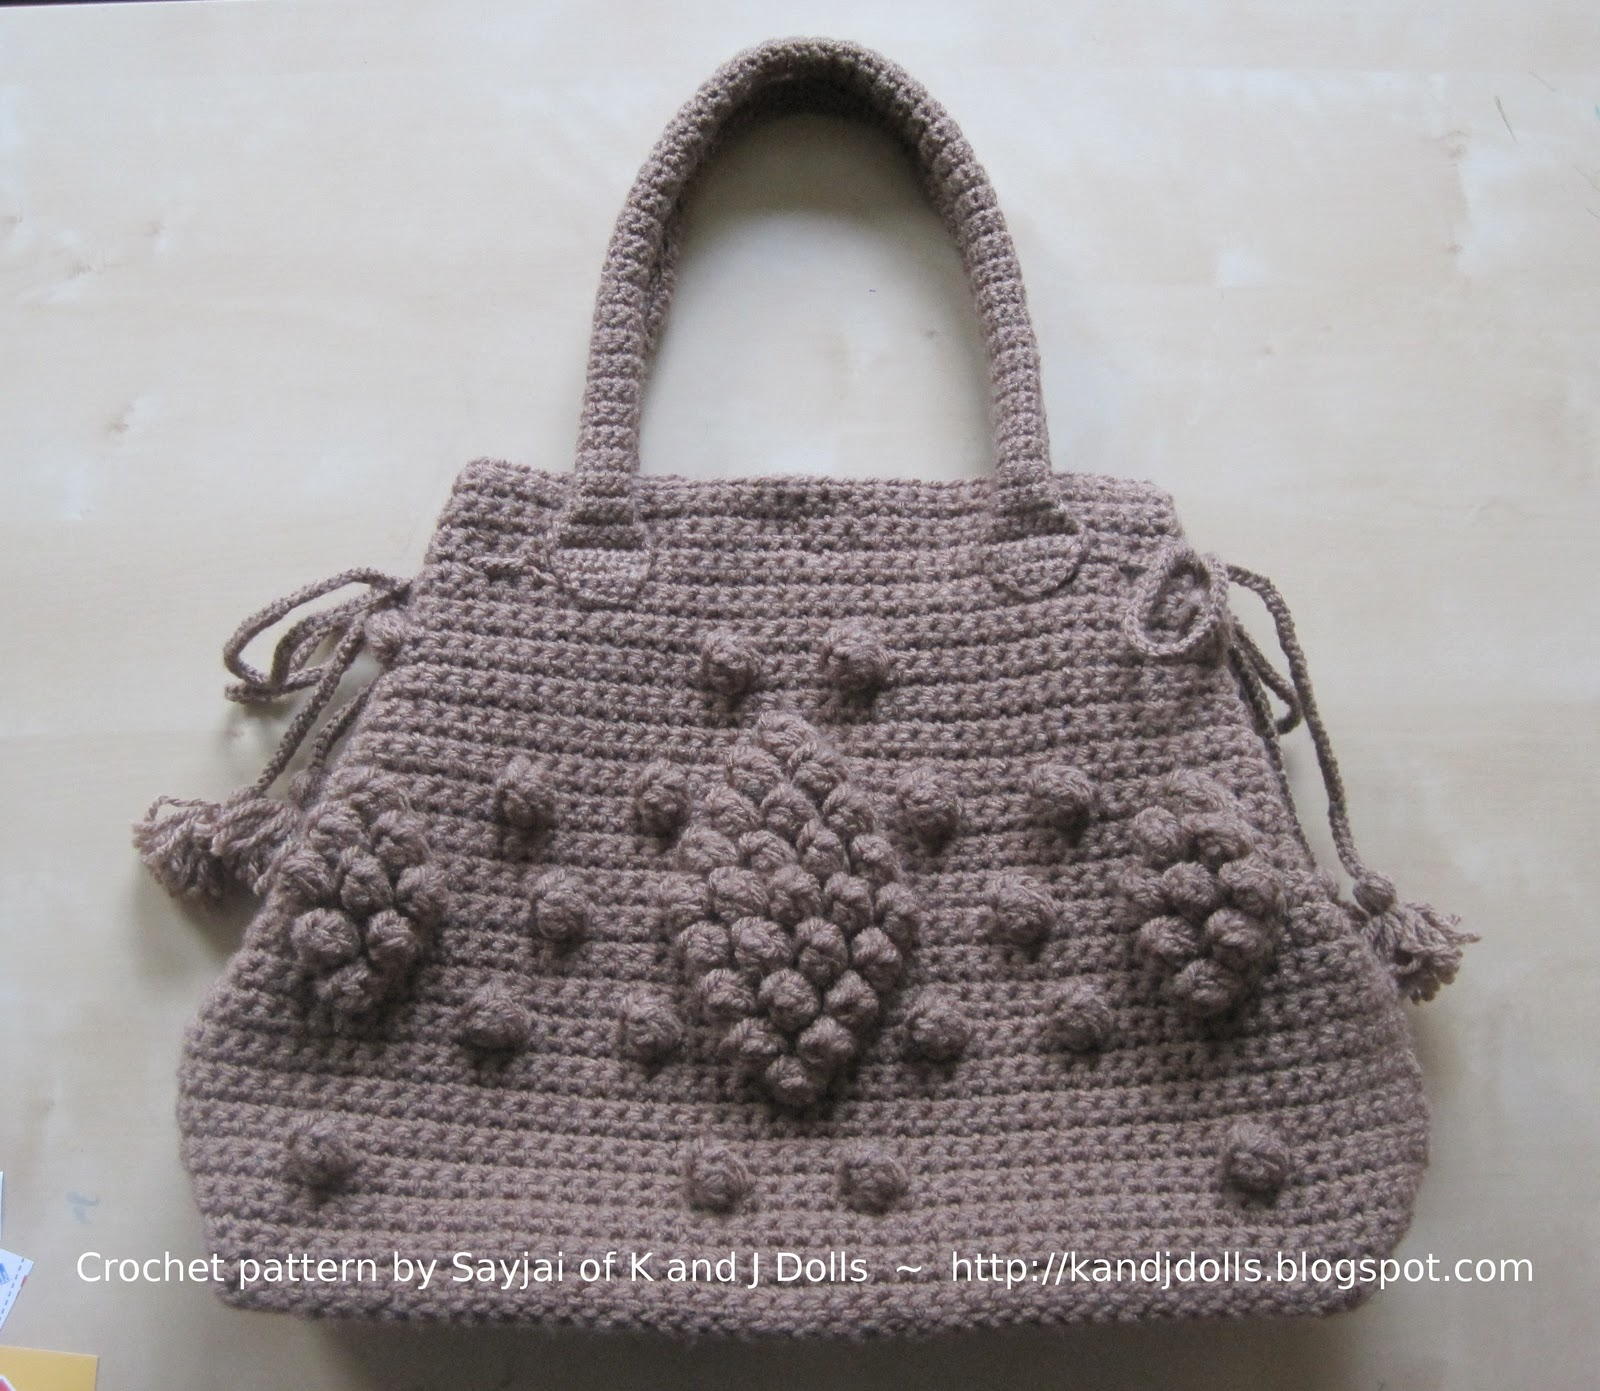 Crochet Purse Patterns Free : 2000 Free Amigurumi Patterns: Free Bag crochet pattern